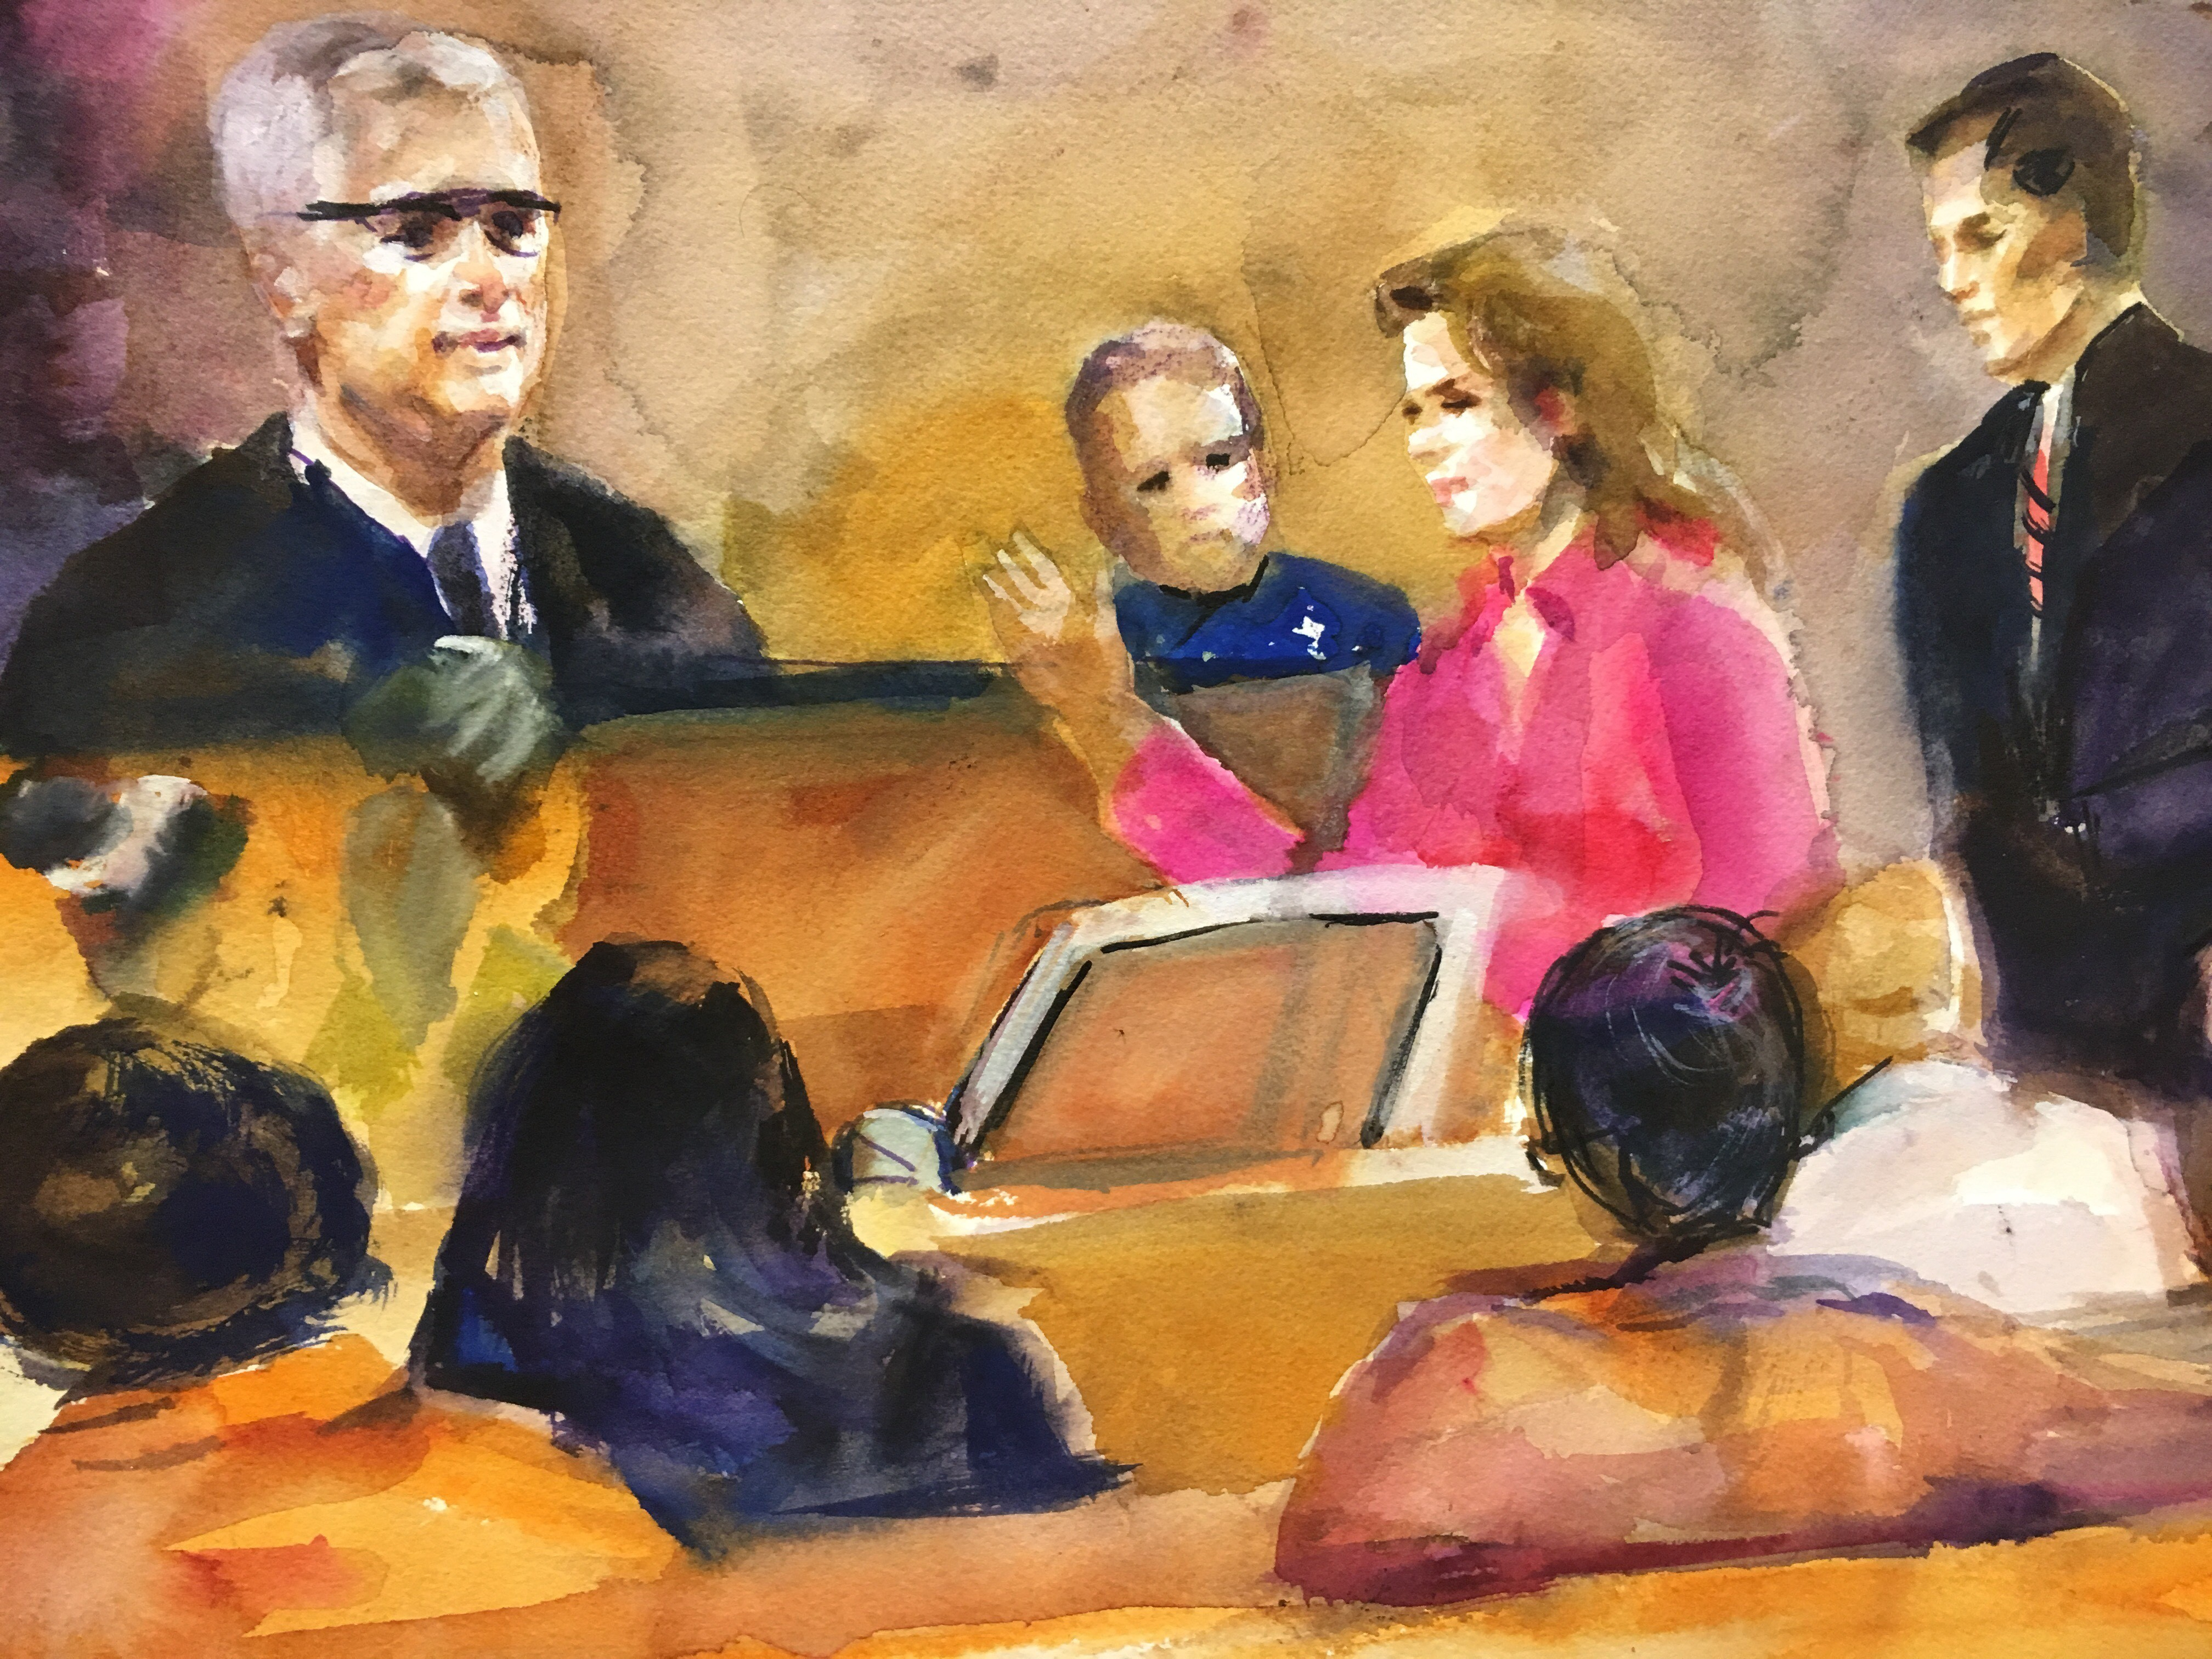 A sketch of the courtroom on the fifth day of Betty Shelby's manslaughter trial. (Courtesy of Evelyn Petroski)